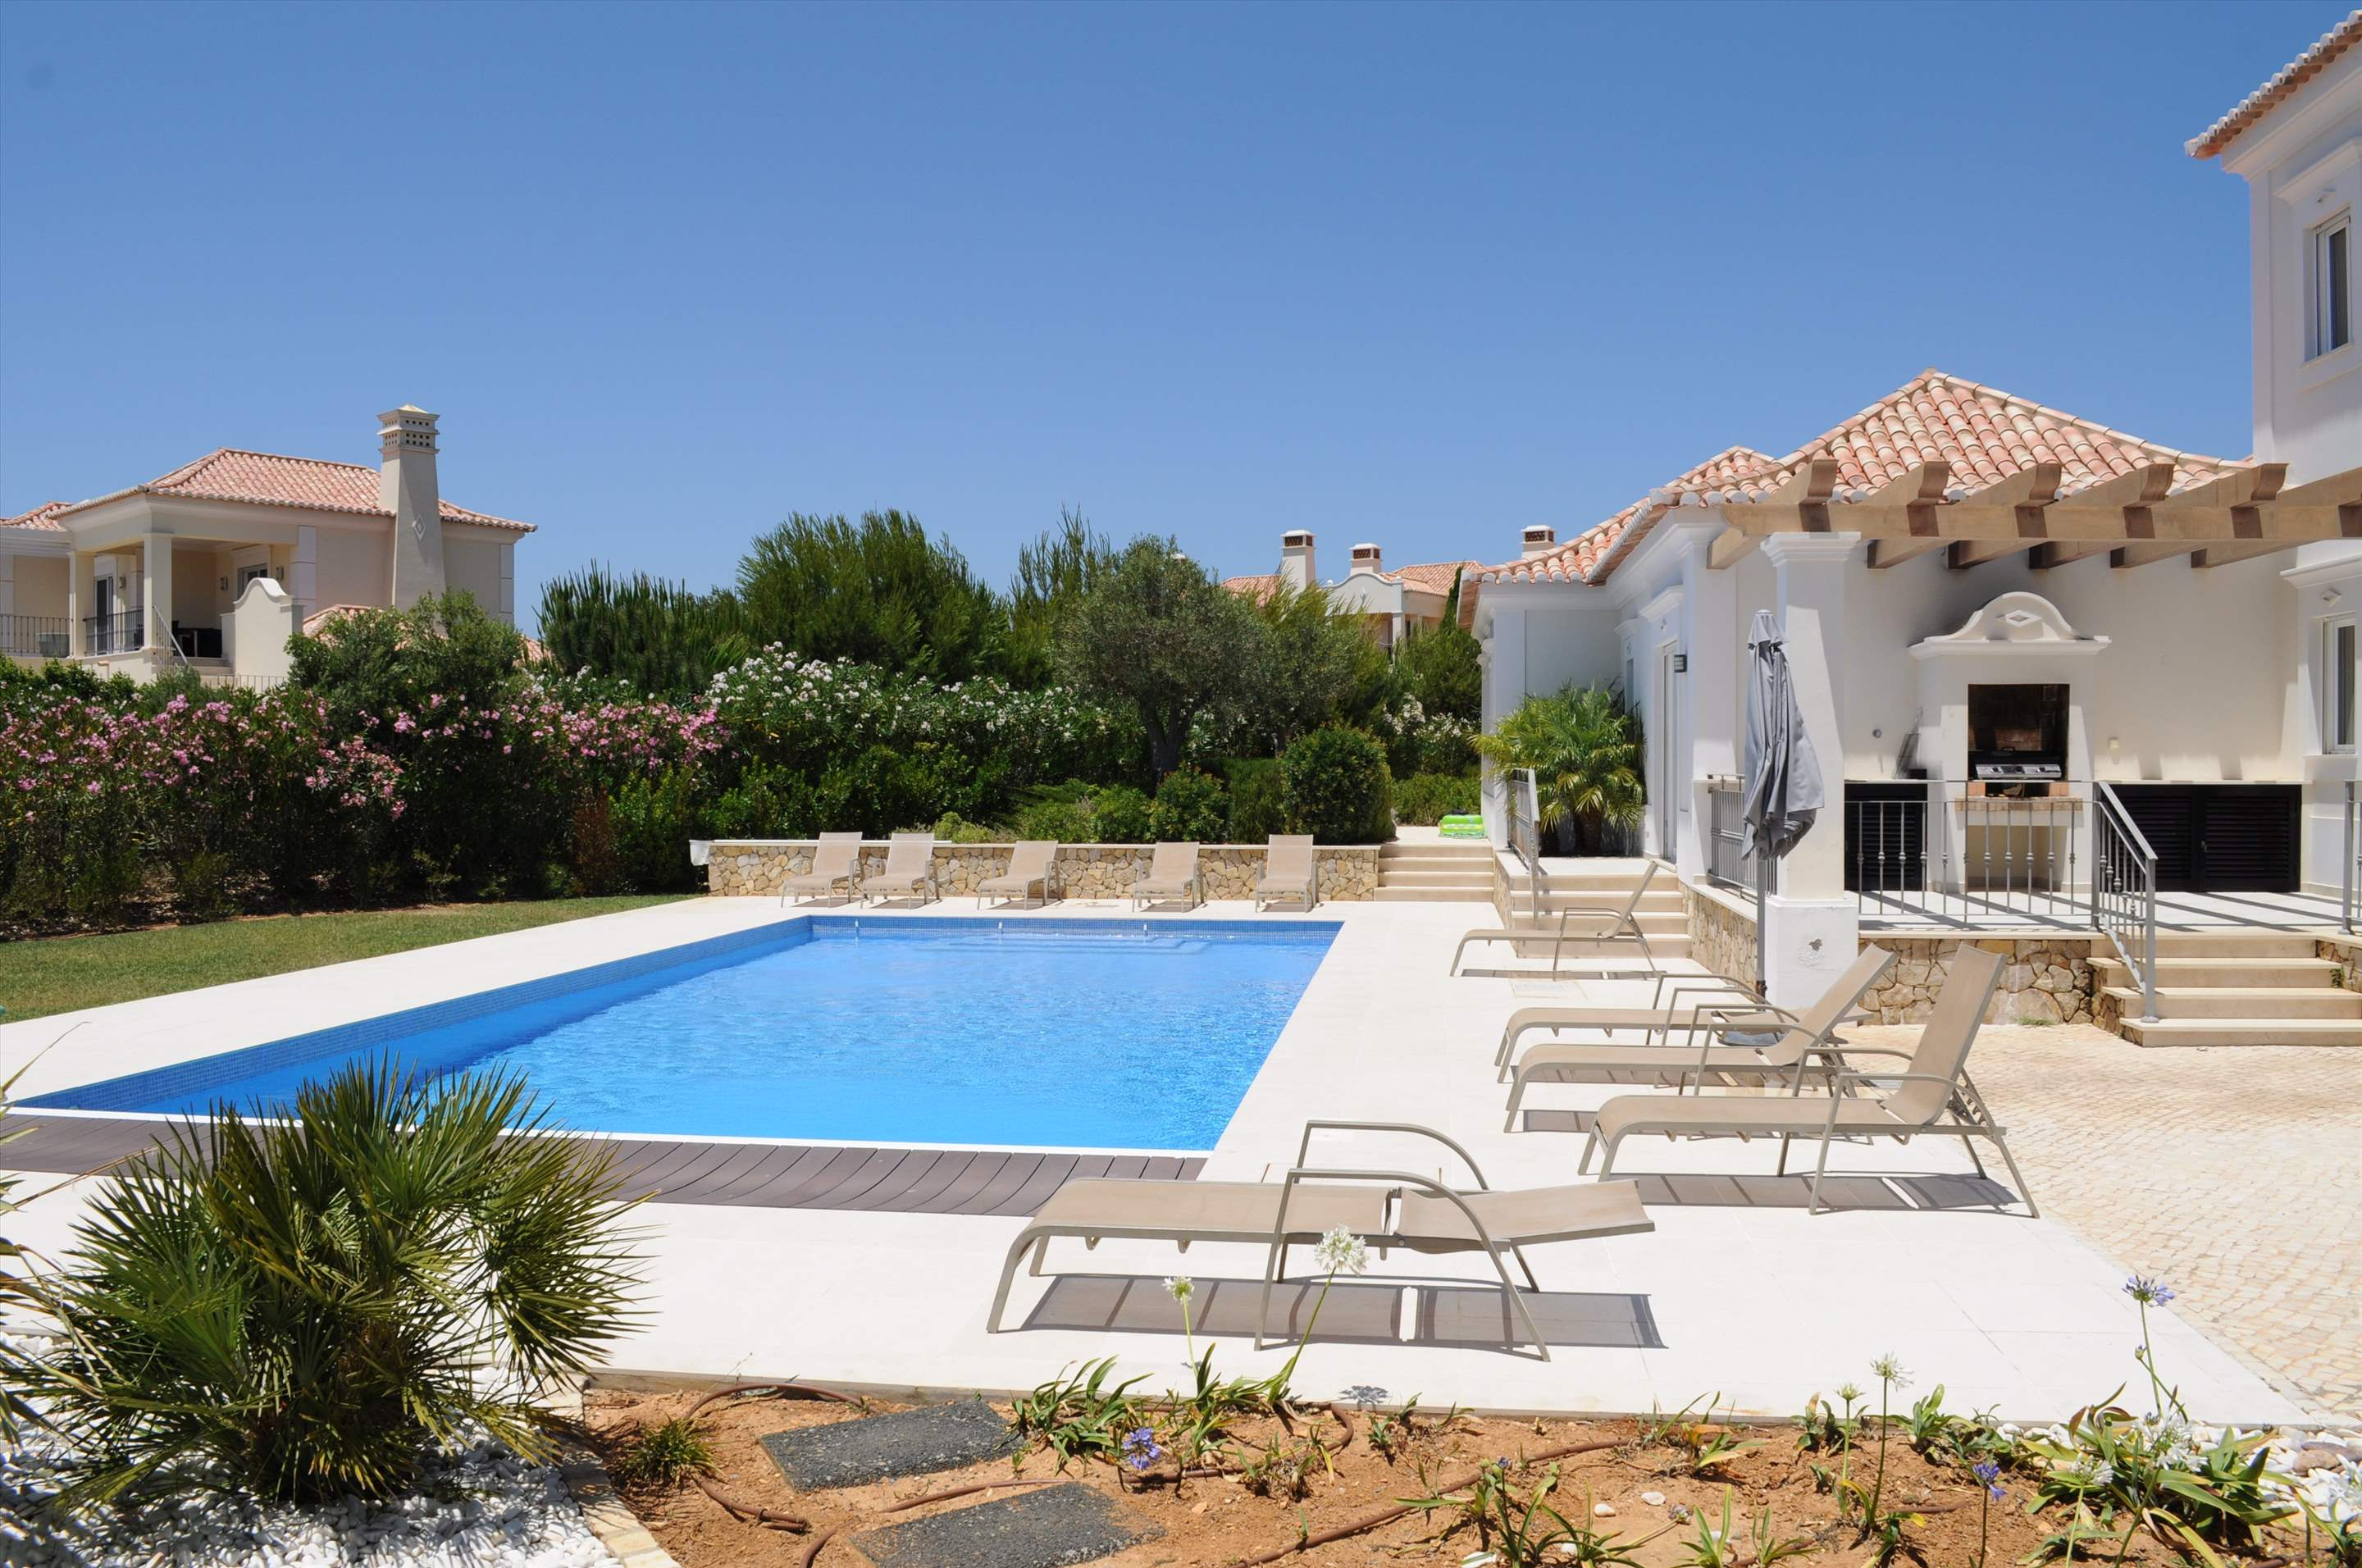 Martinhal Luxury Villa No.18, 5 bedroom villa in Martinhal Sagres, Algarve Photo #2